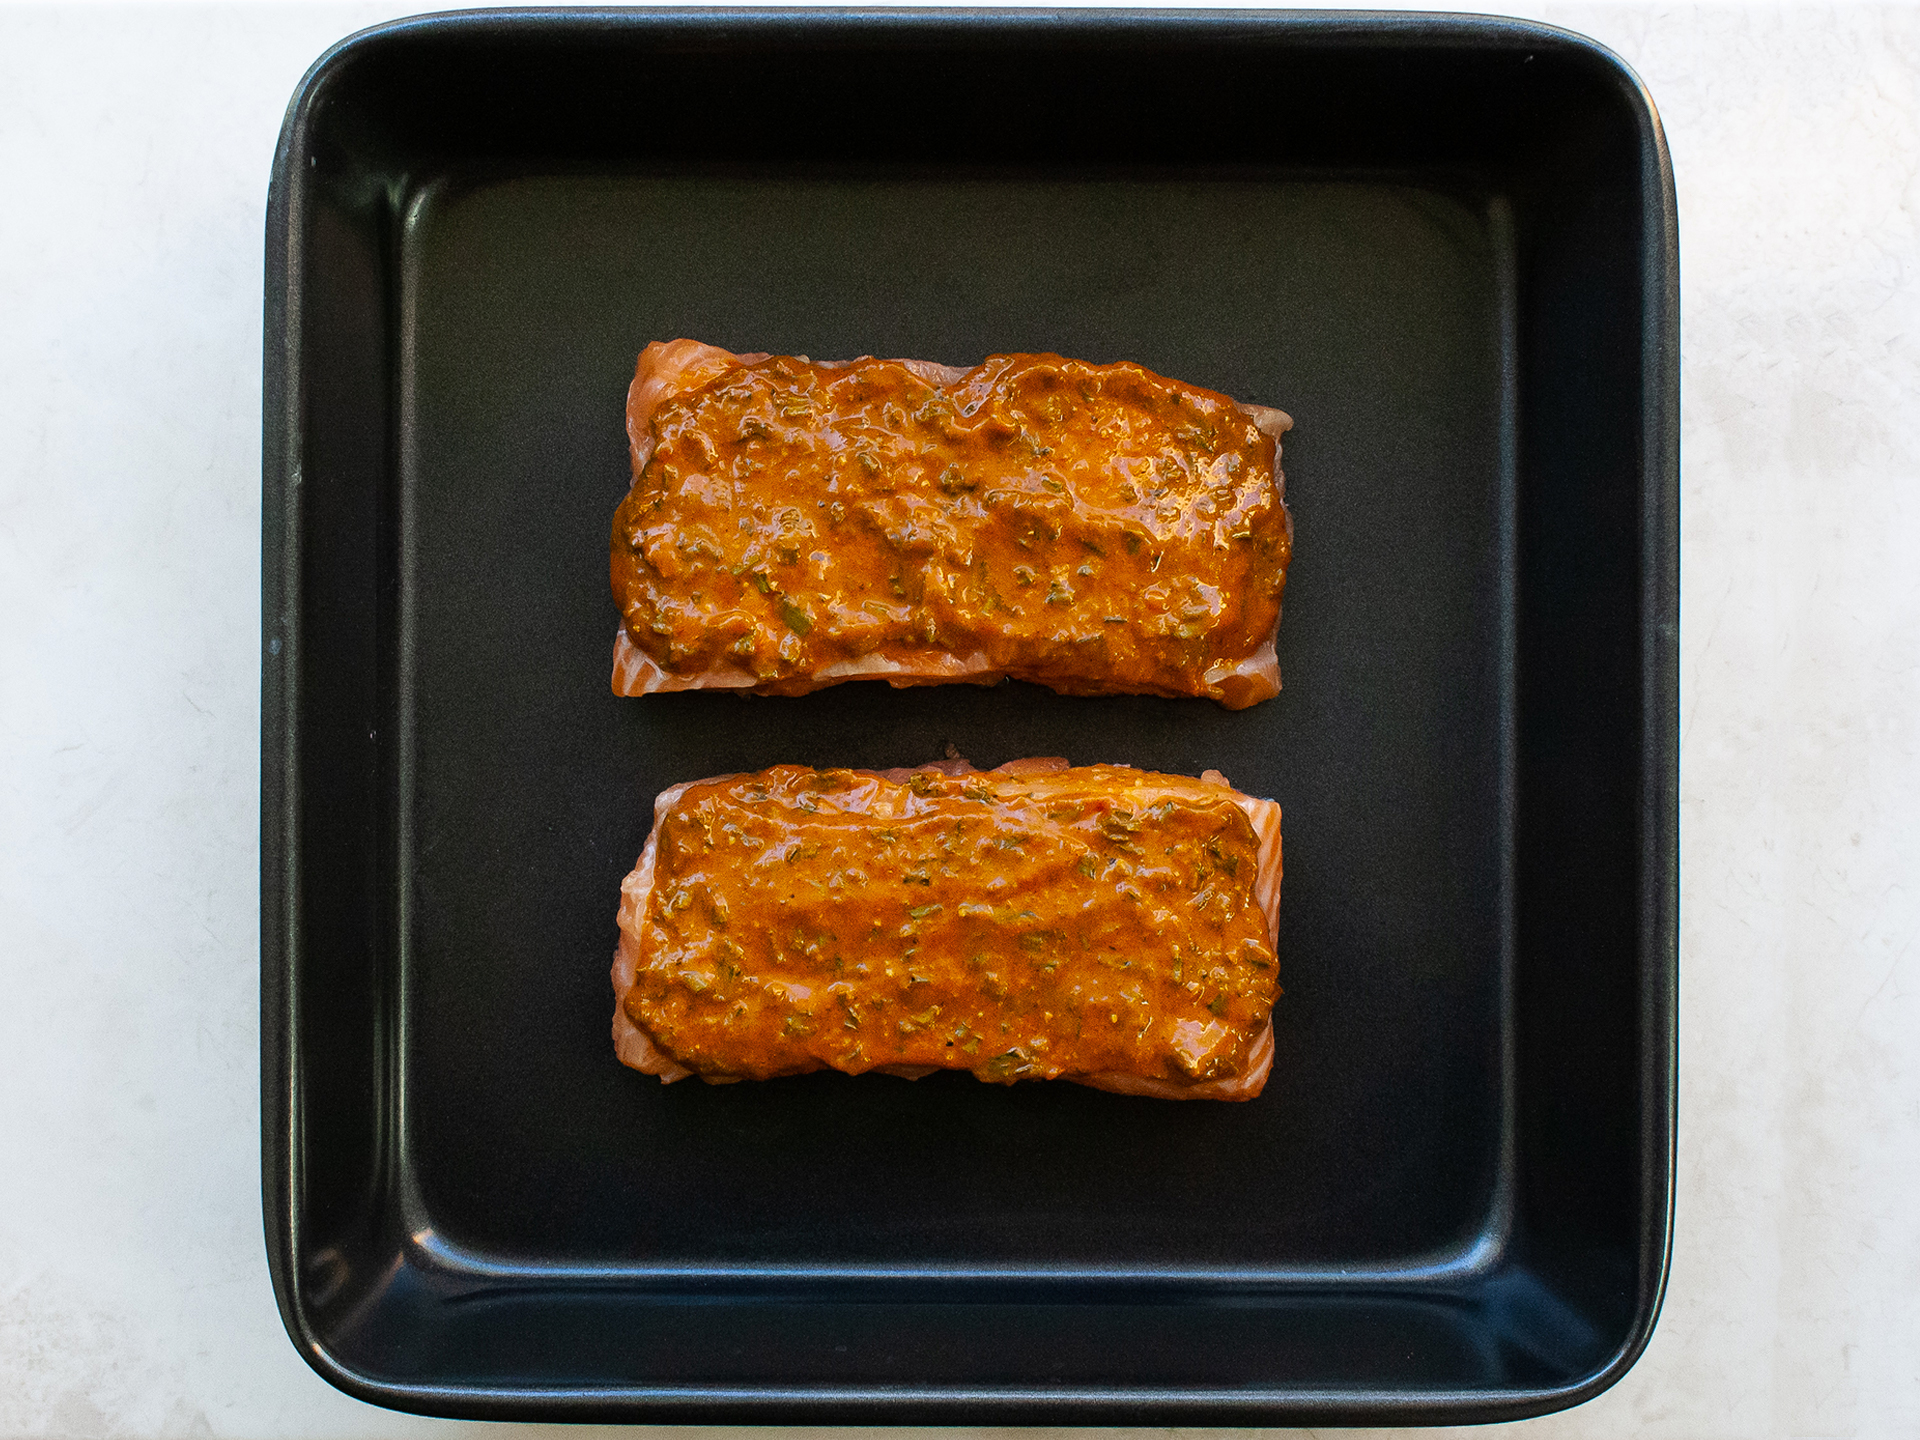 Salmon fillets with glaze spread over